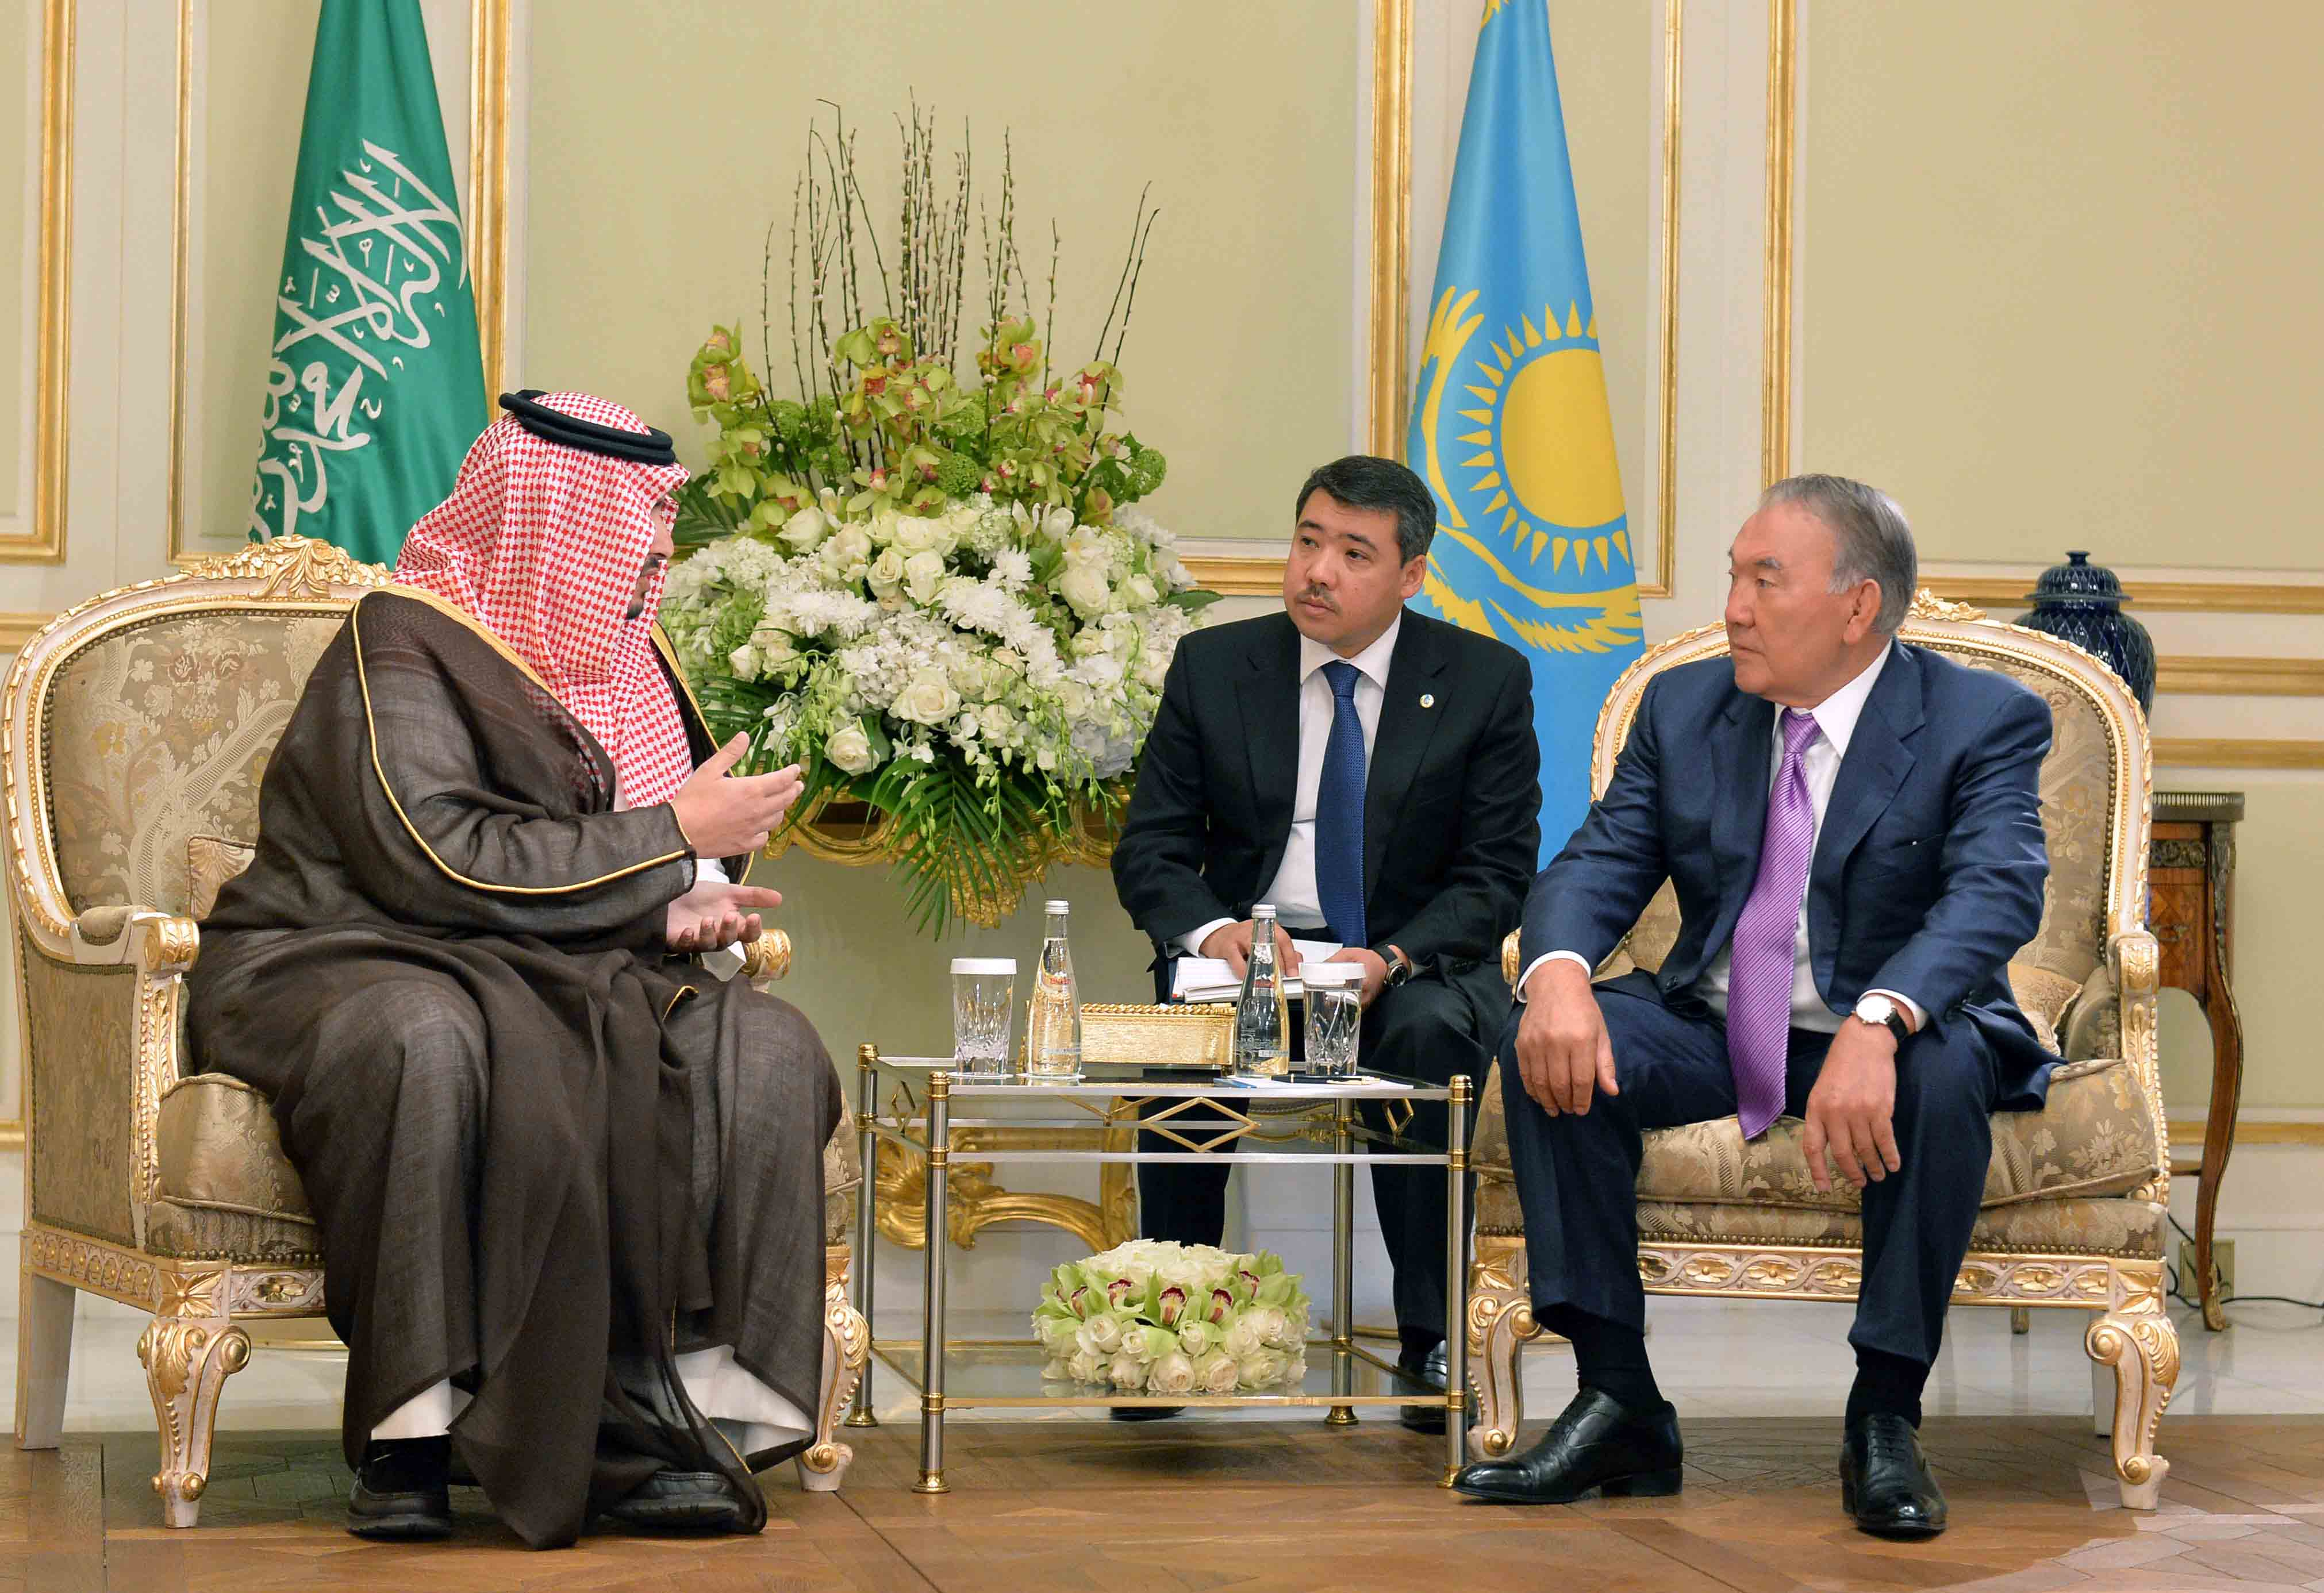 Meeting with Vice-President of Amiantit Group Prince Turki bin